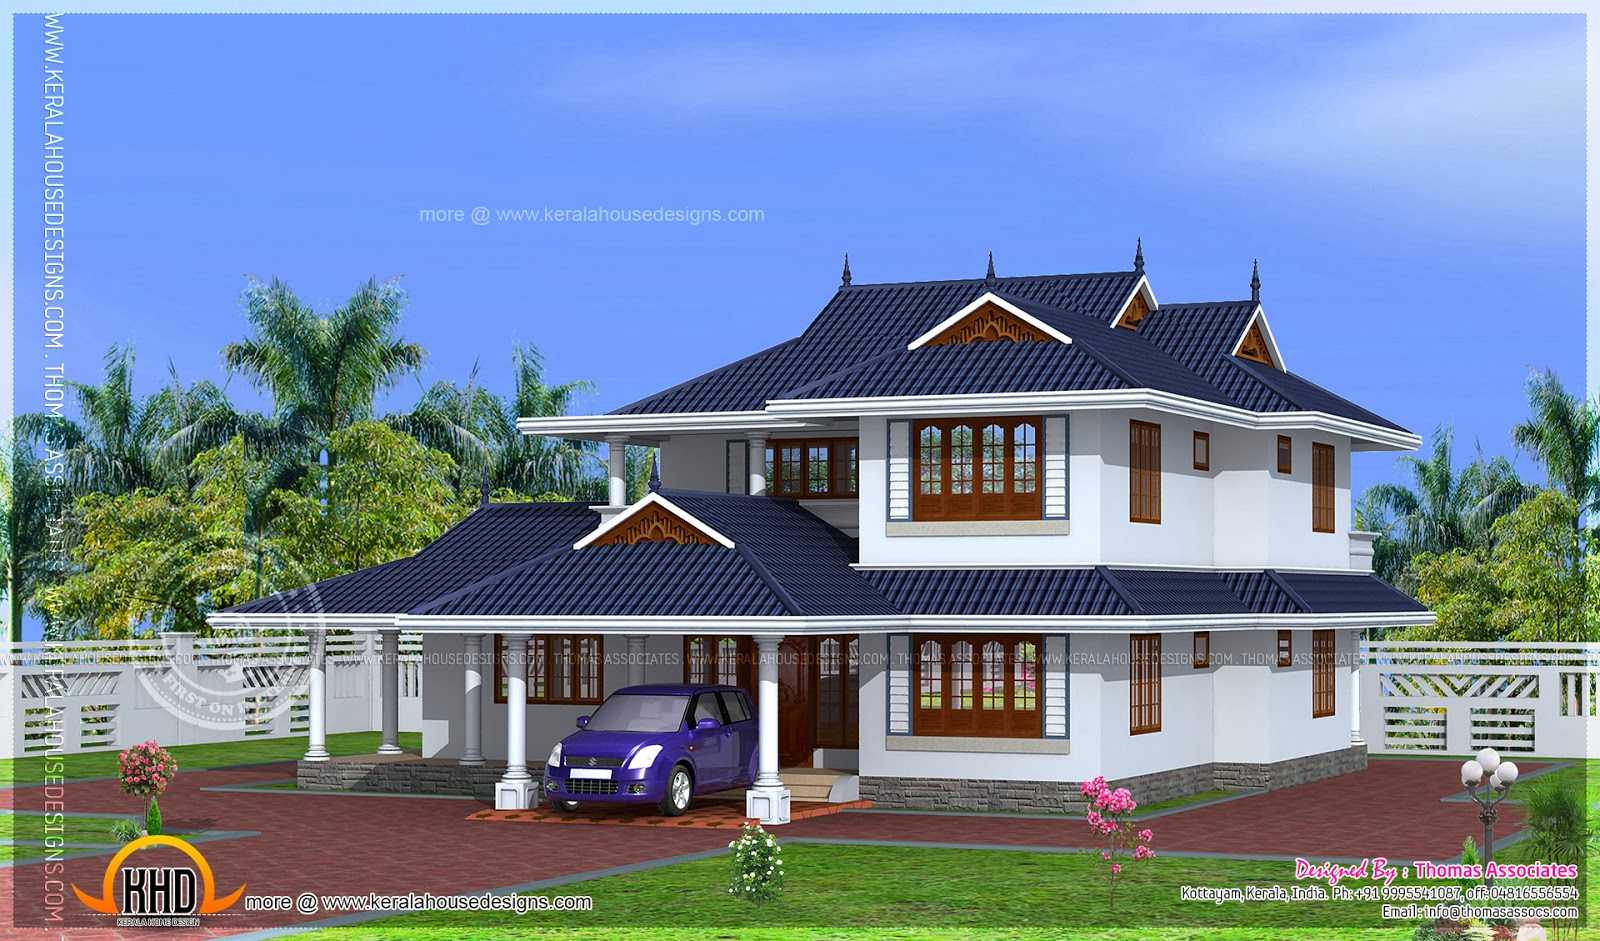 Kerala house models joy studio design gallery best design for Kerala house models photos